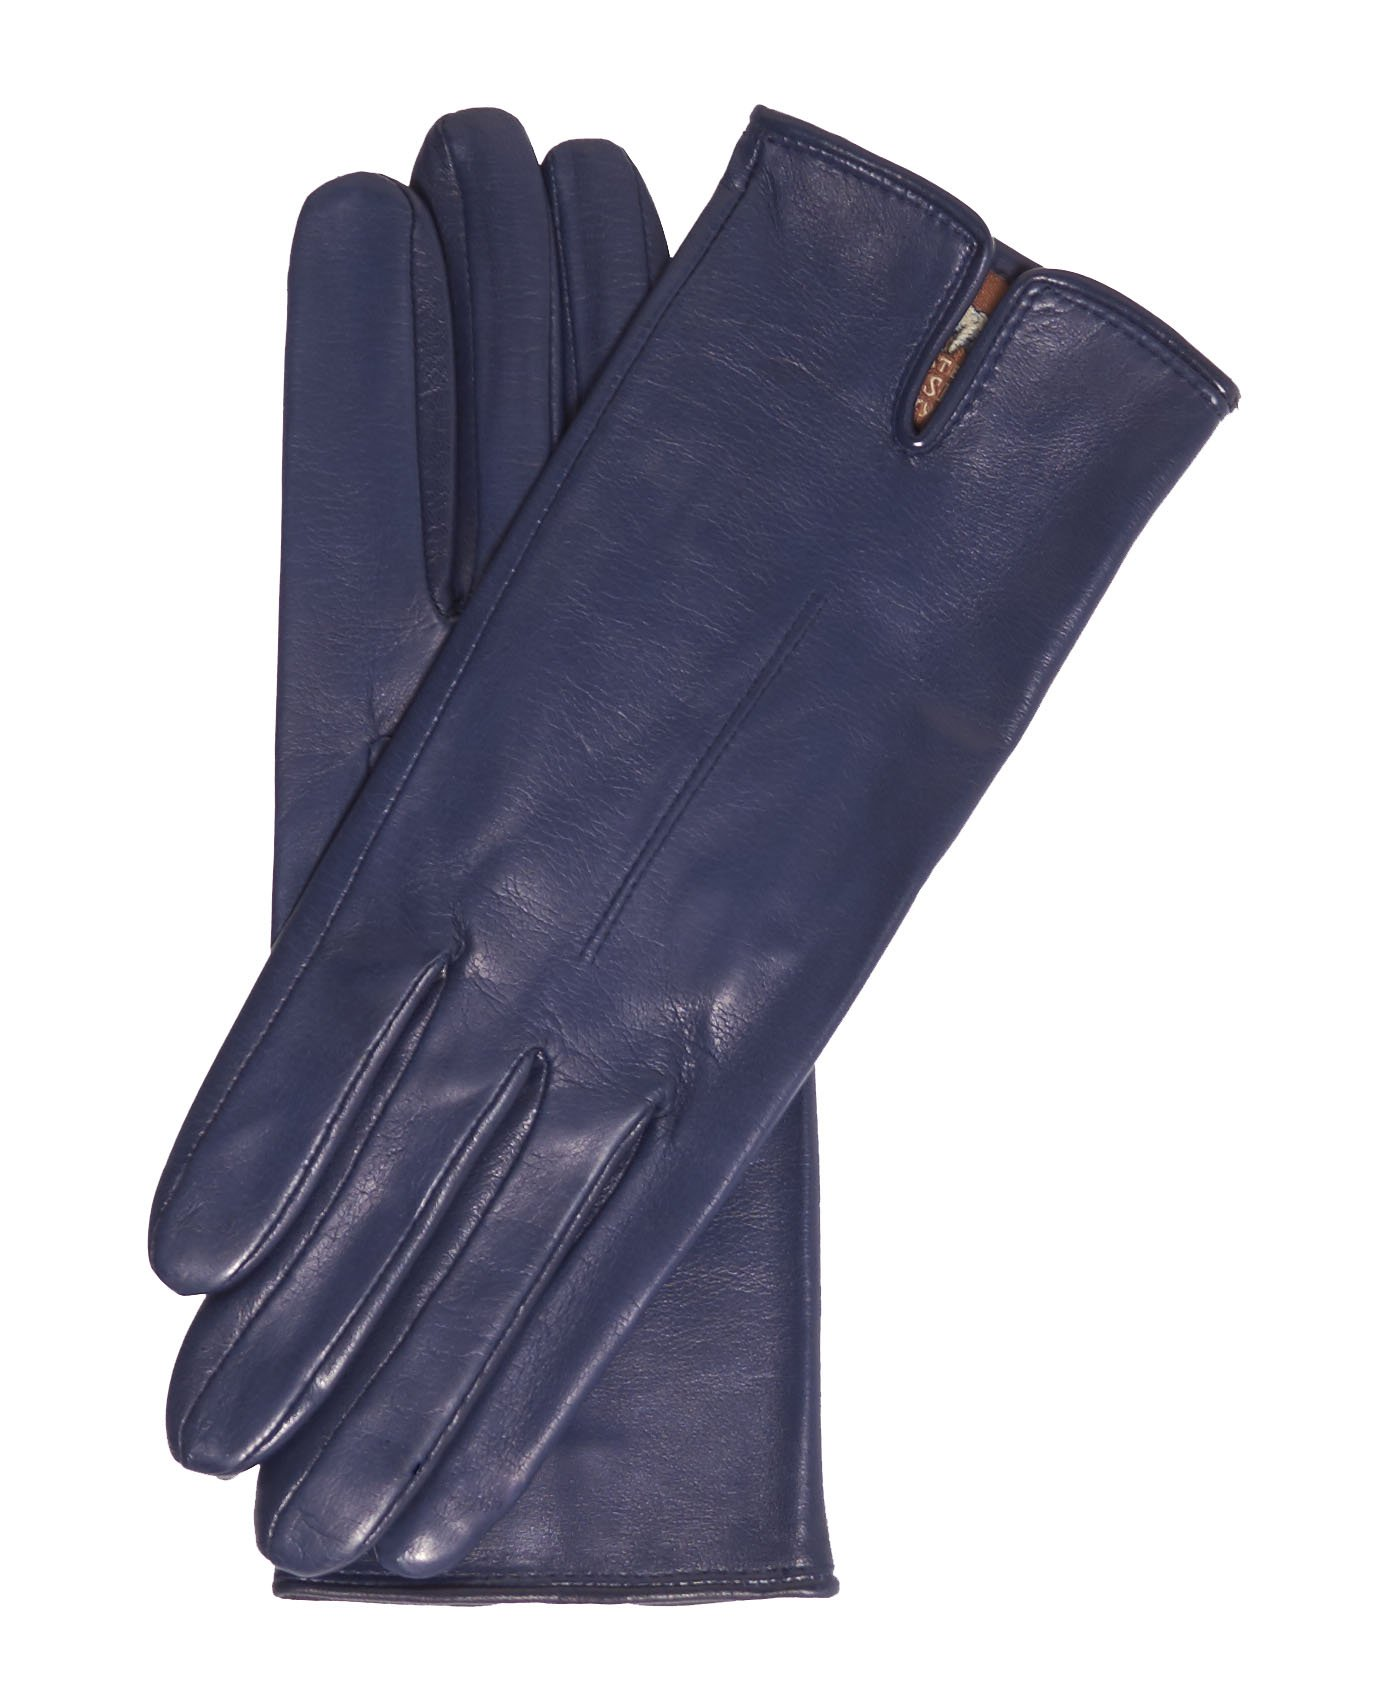 Fratelli Orsini Everyday Women's Italian Silk/Cashmere Lined Leather Gloves Size 7 1/2 Color Navy